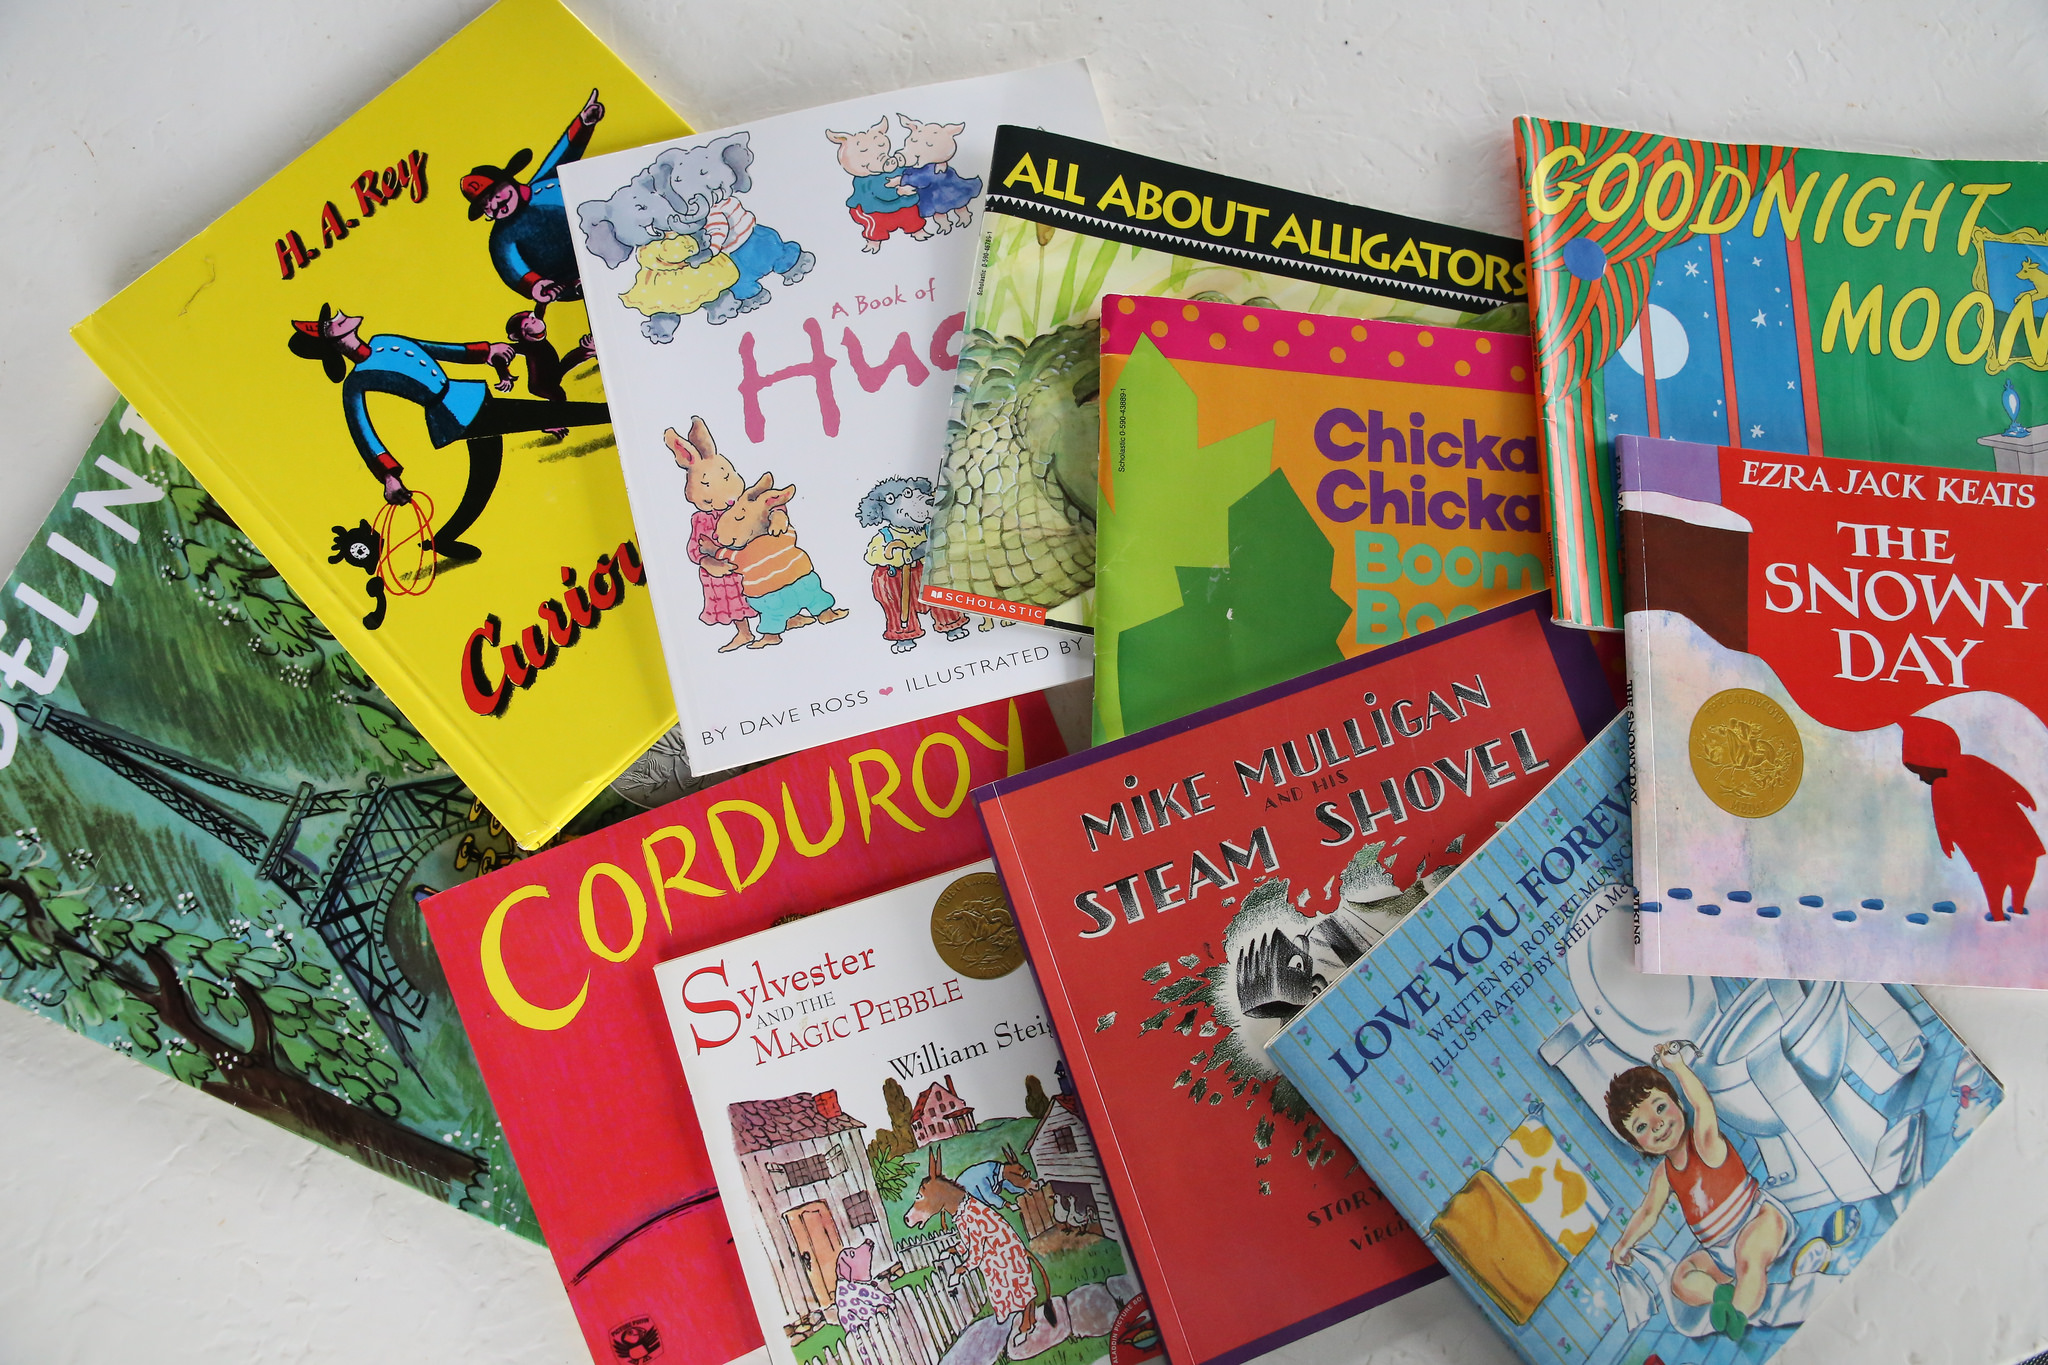 books children childrens literature child writing choosing texts vanhook carol business learned writers commons creative flickr